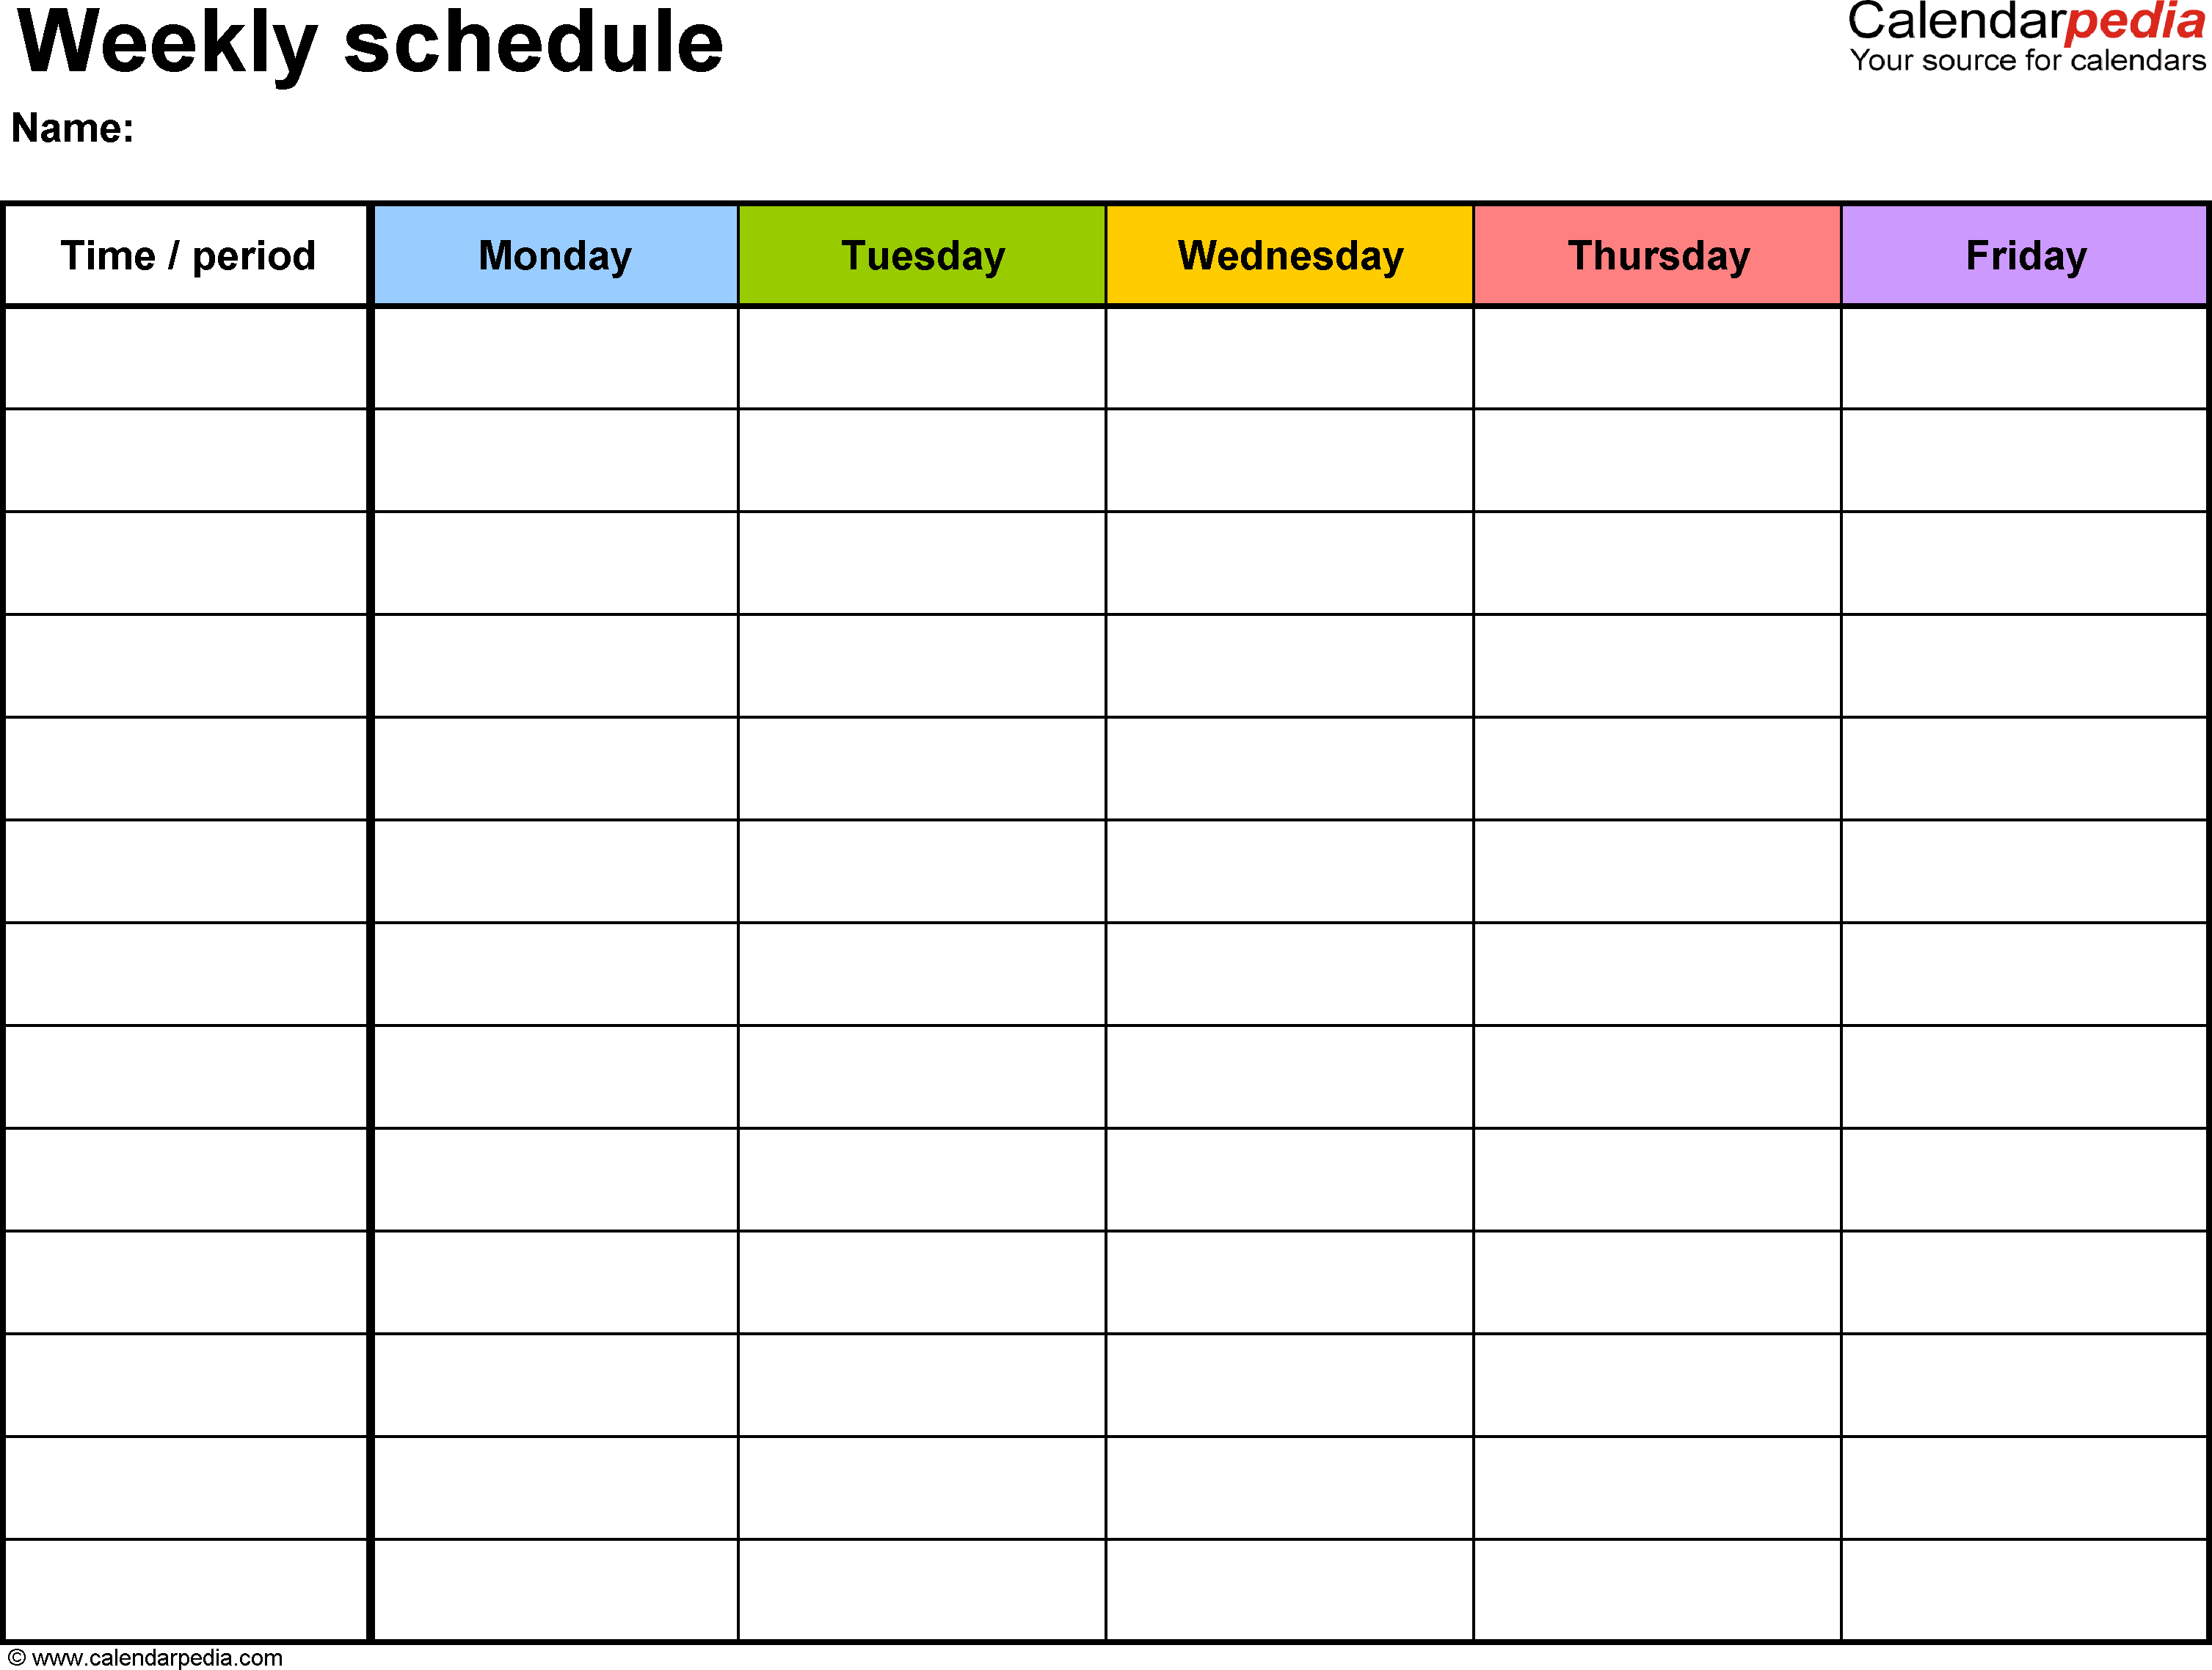 Free Weekly Schedule Templates For Word - 18 Templates within Editable Calendars Download Template